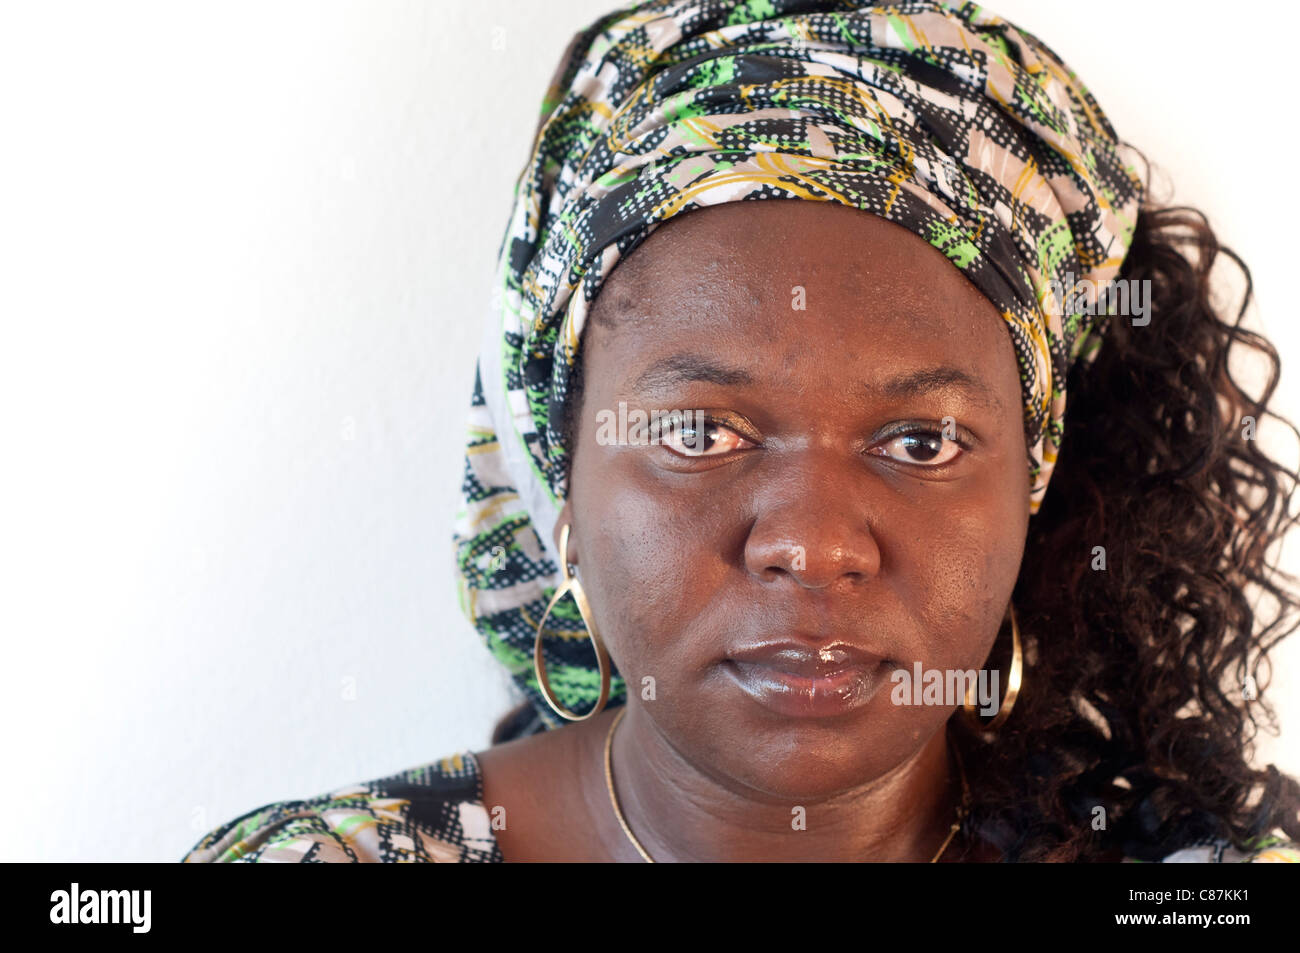 Beautiful African woman portrait - Stock Image